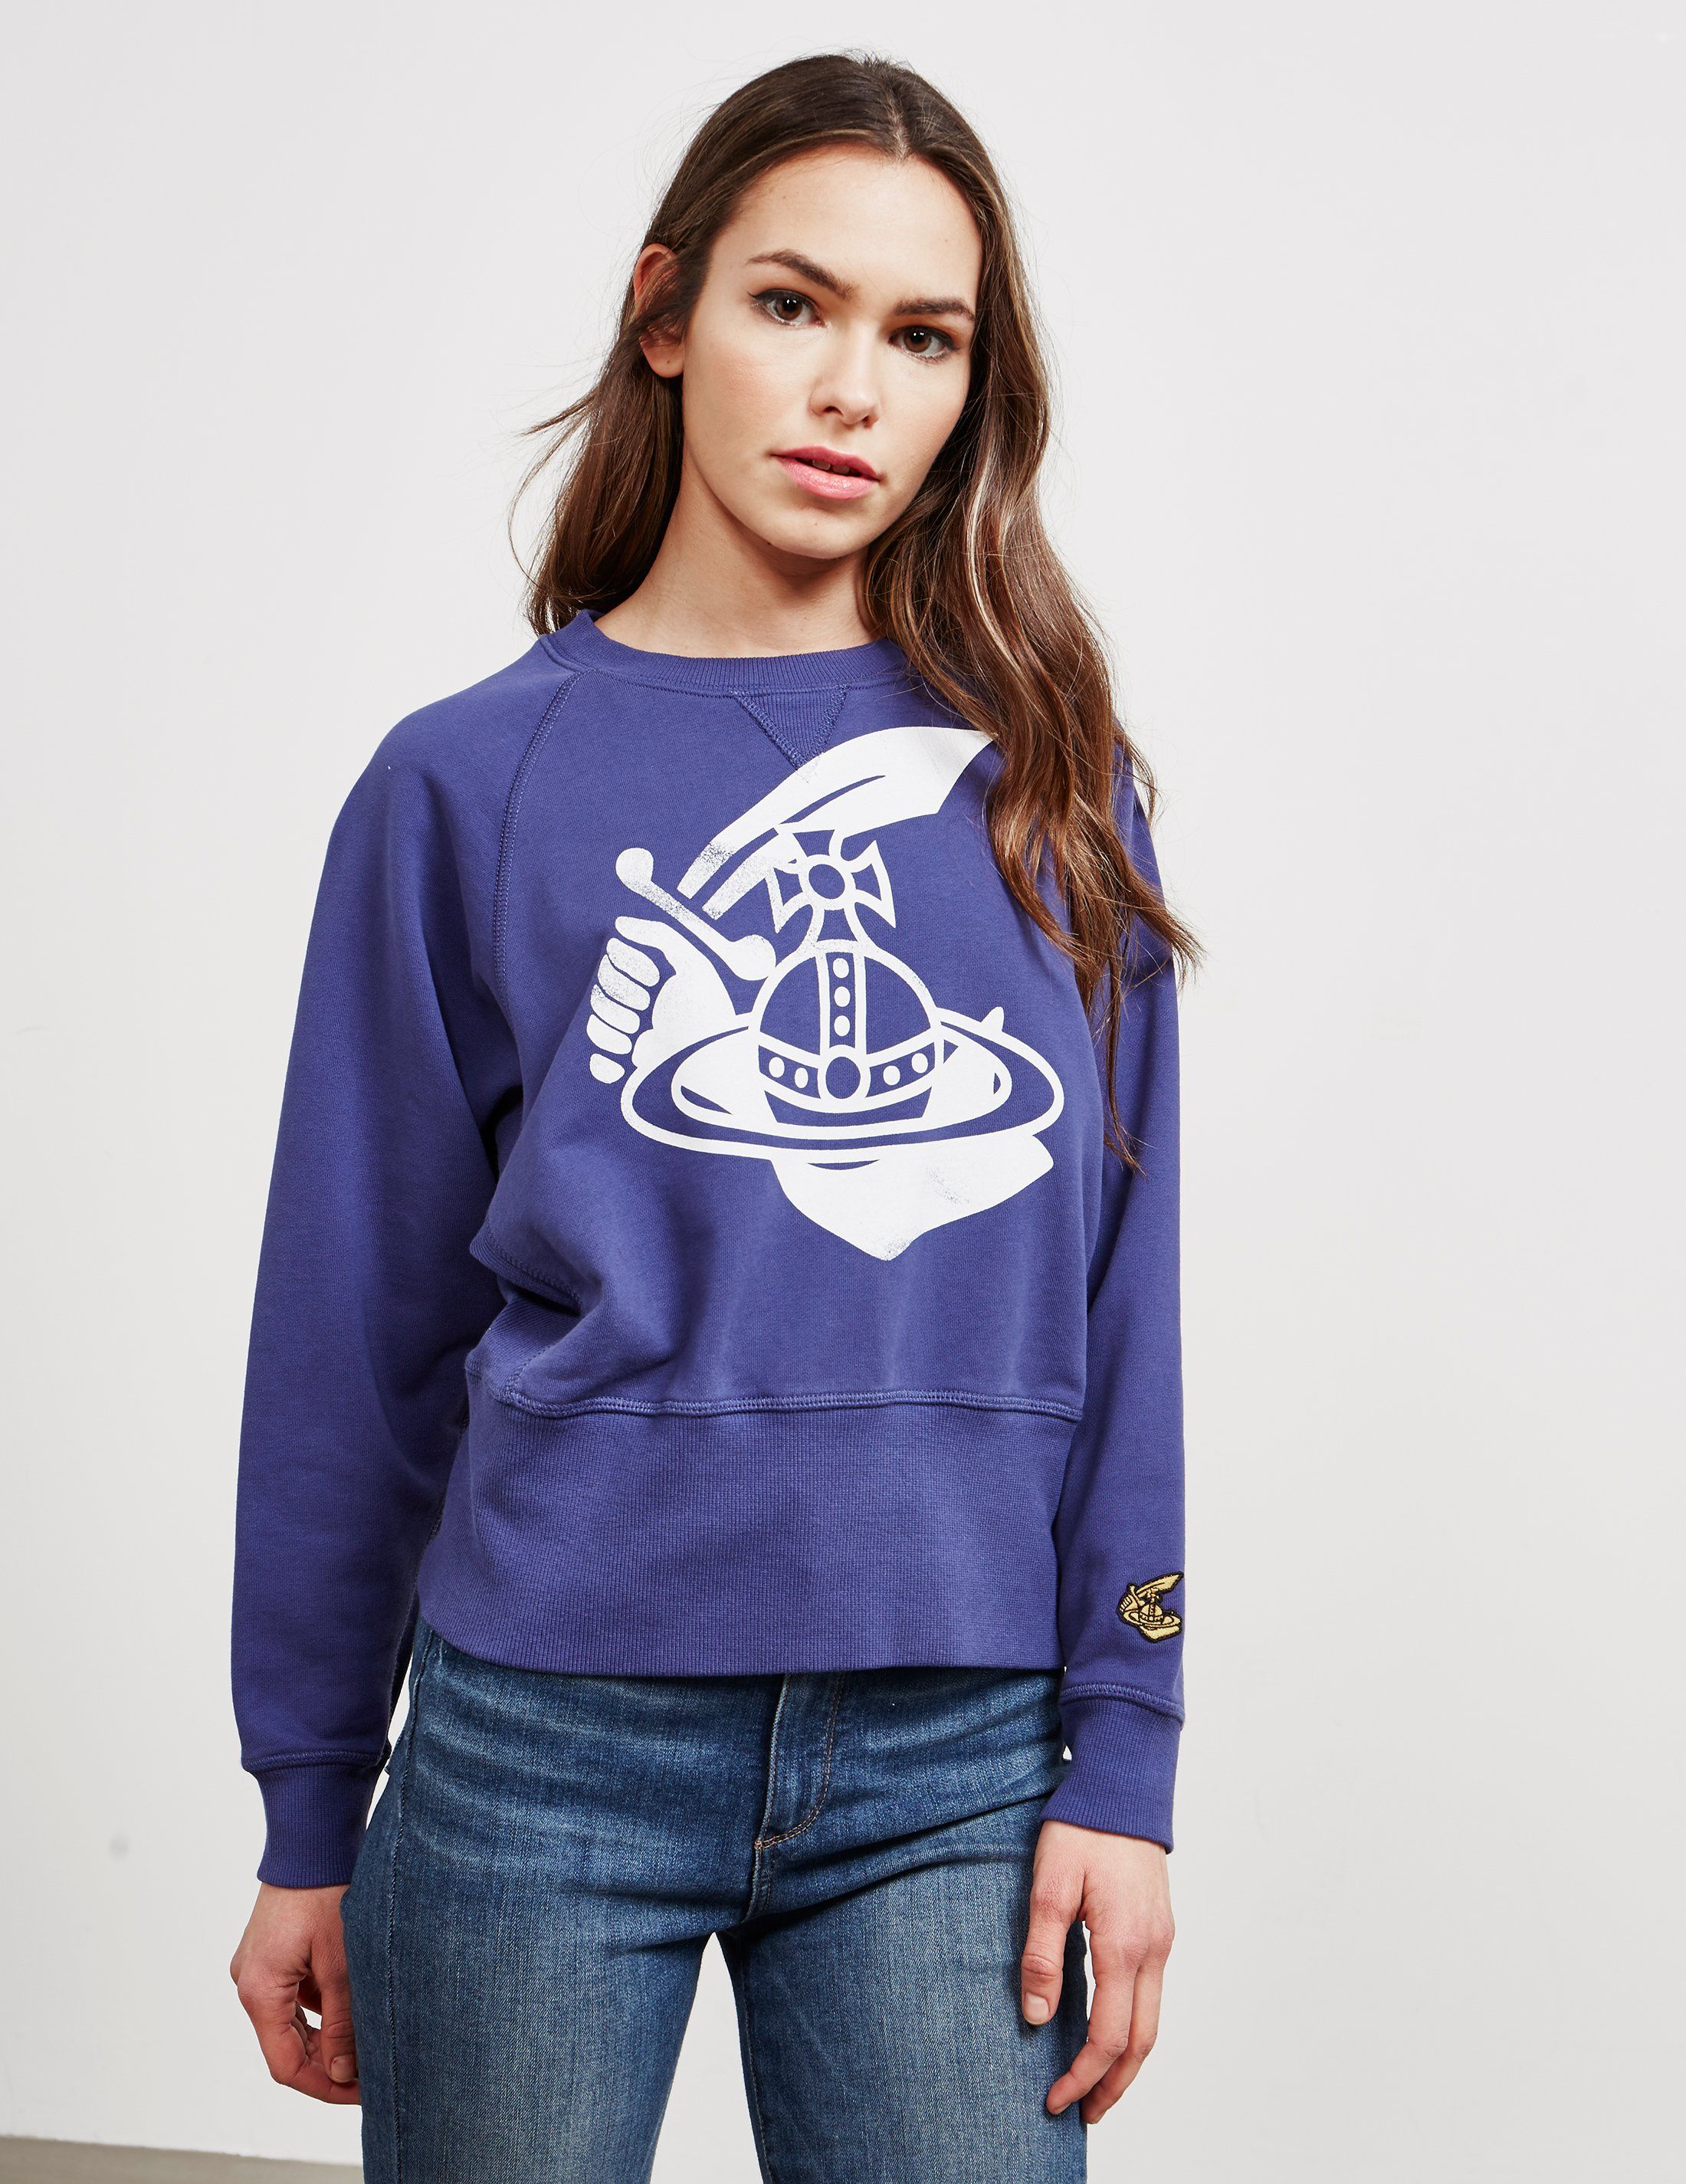 Vivienne Westwood Anglomania Athletic Orb Sweatshirt